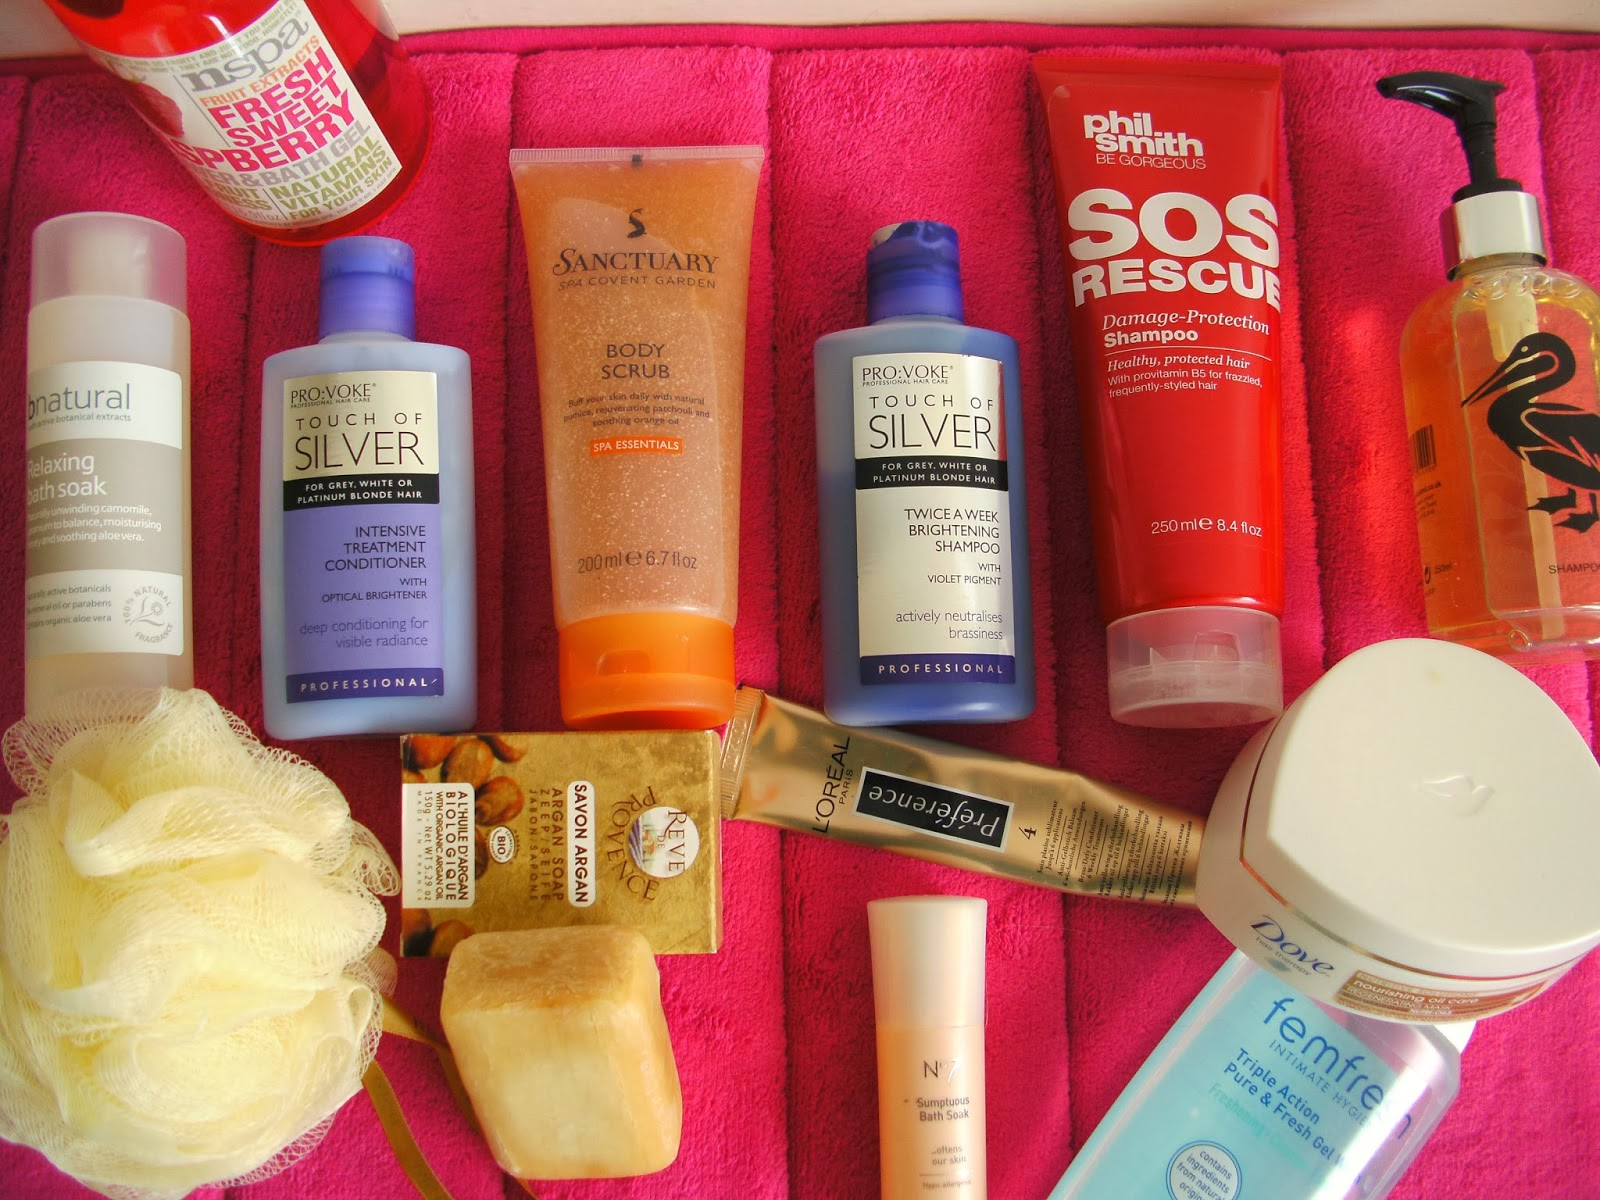 What's in my Shower - Hair, Shower & Bath Products I'm Currently Using Including: nspa, Sanctuary Spa, PROVOKE Touch of Silver, Phil Smith, Duck Island, L'Oreal, Dove Hair Mask, No7 Bath Soak, Argan Soap, bnatural, Shower Puff, Femfresh